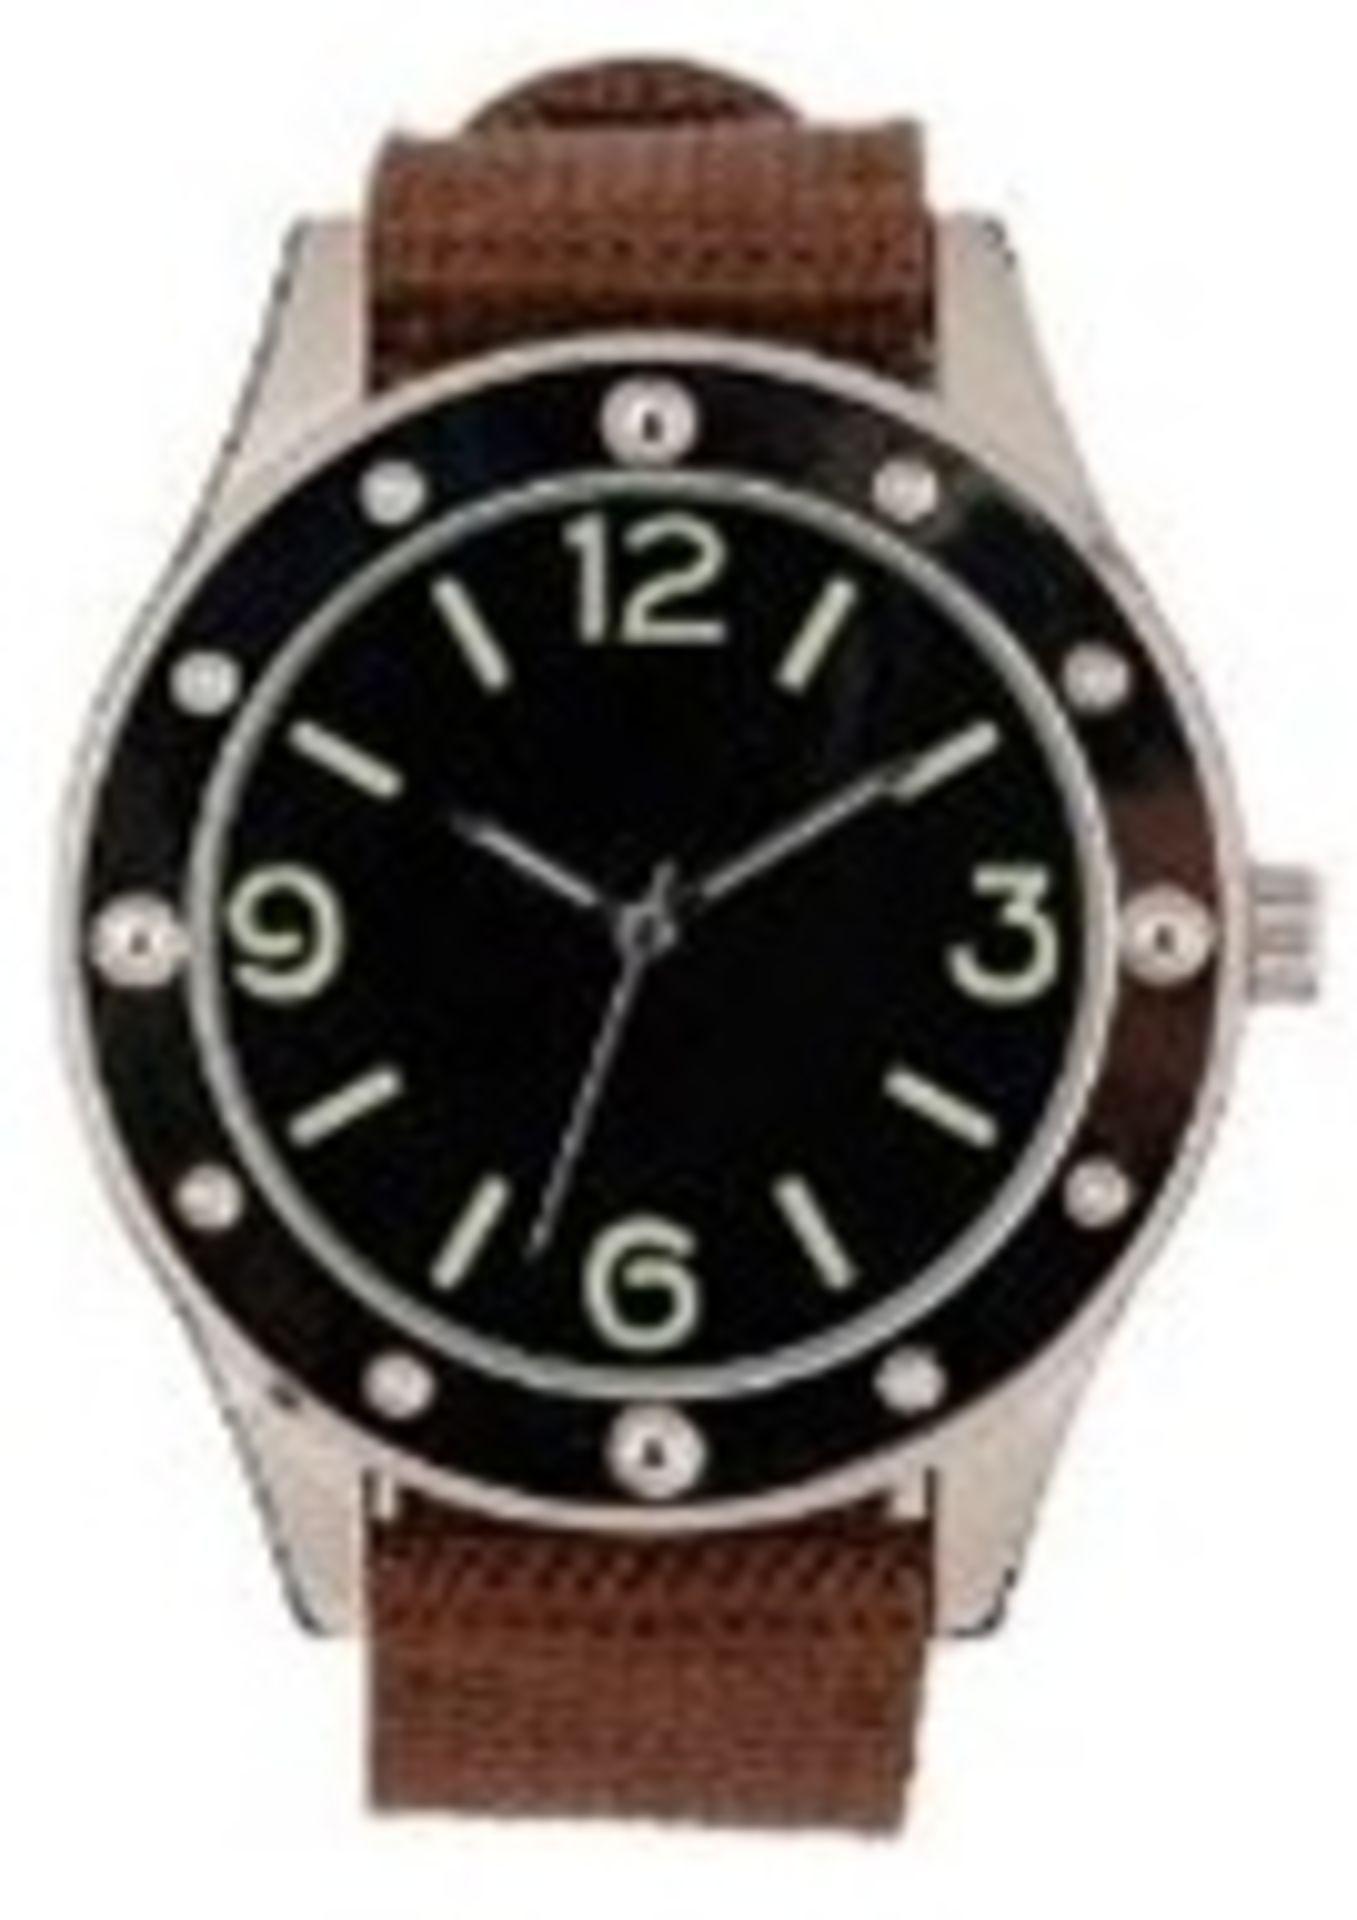 + VAT Brand New Gents 1950s Egyptian Naval Commando Watch with Engraved Back in Presentation Box